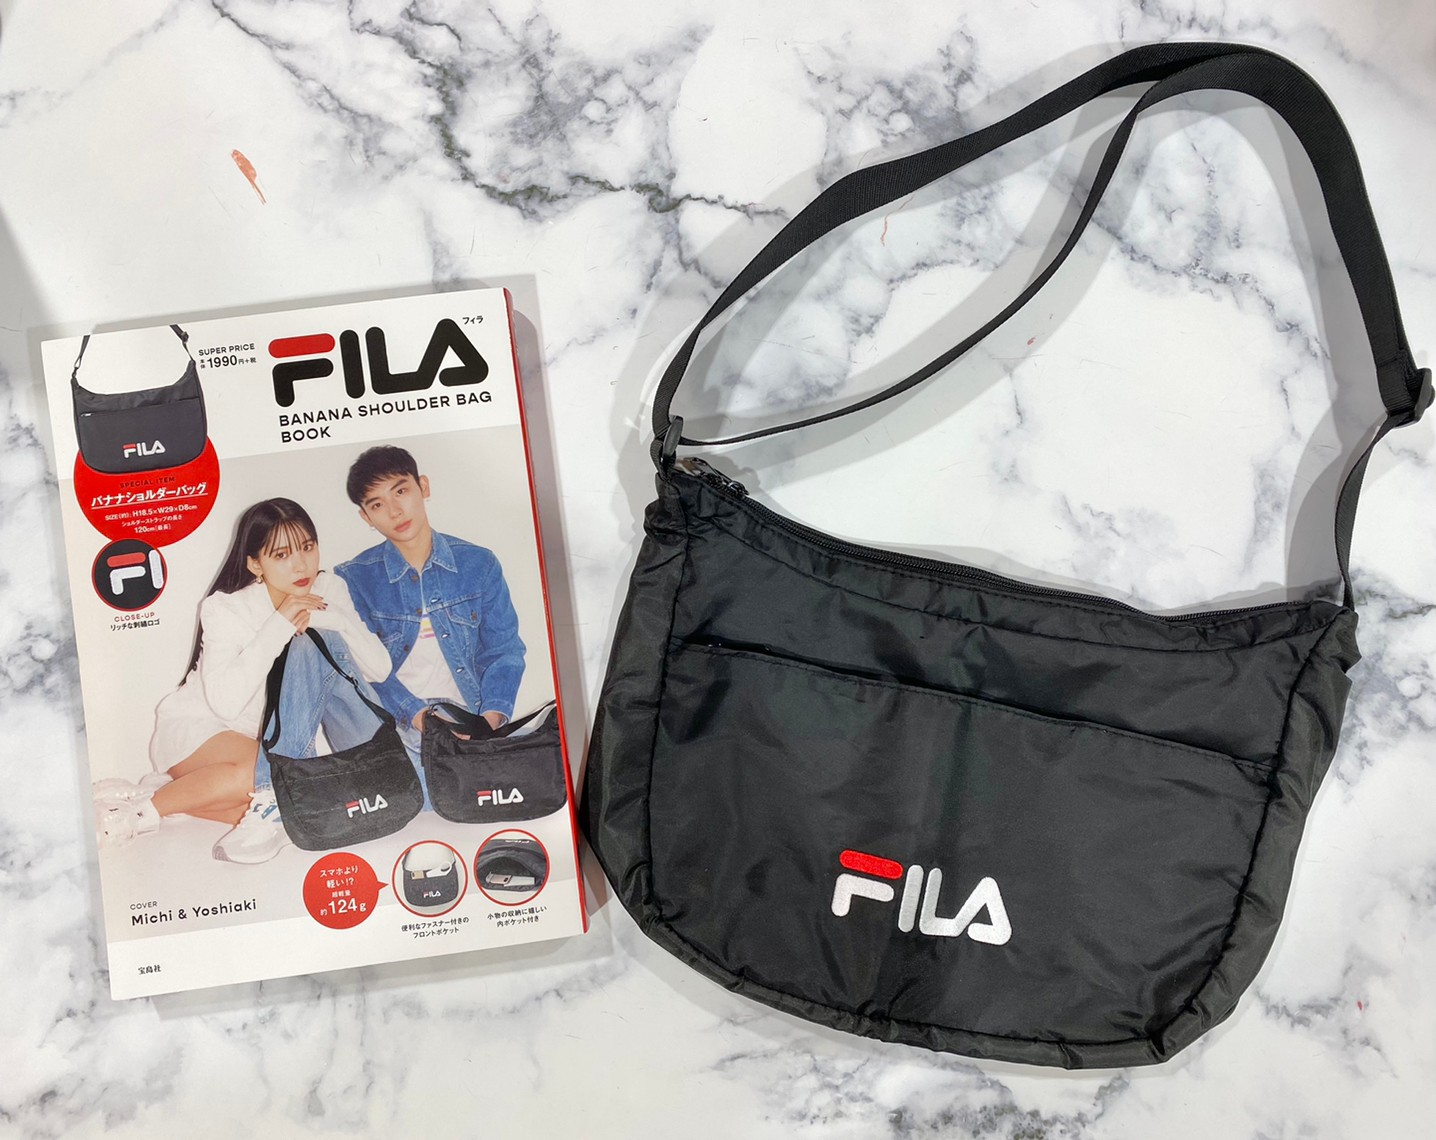 FILA BANANA SHOULDER BAG BOOKと付録の画像